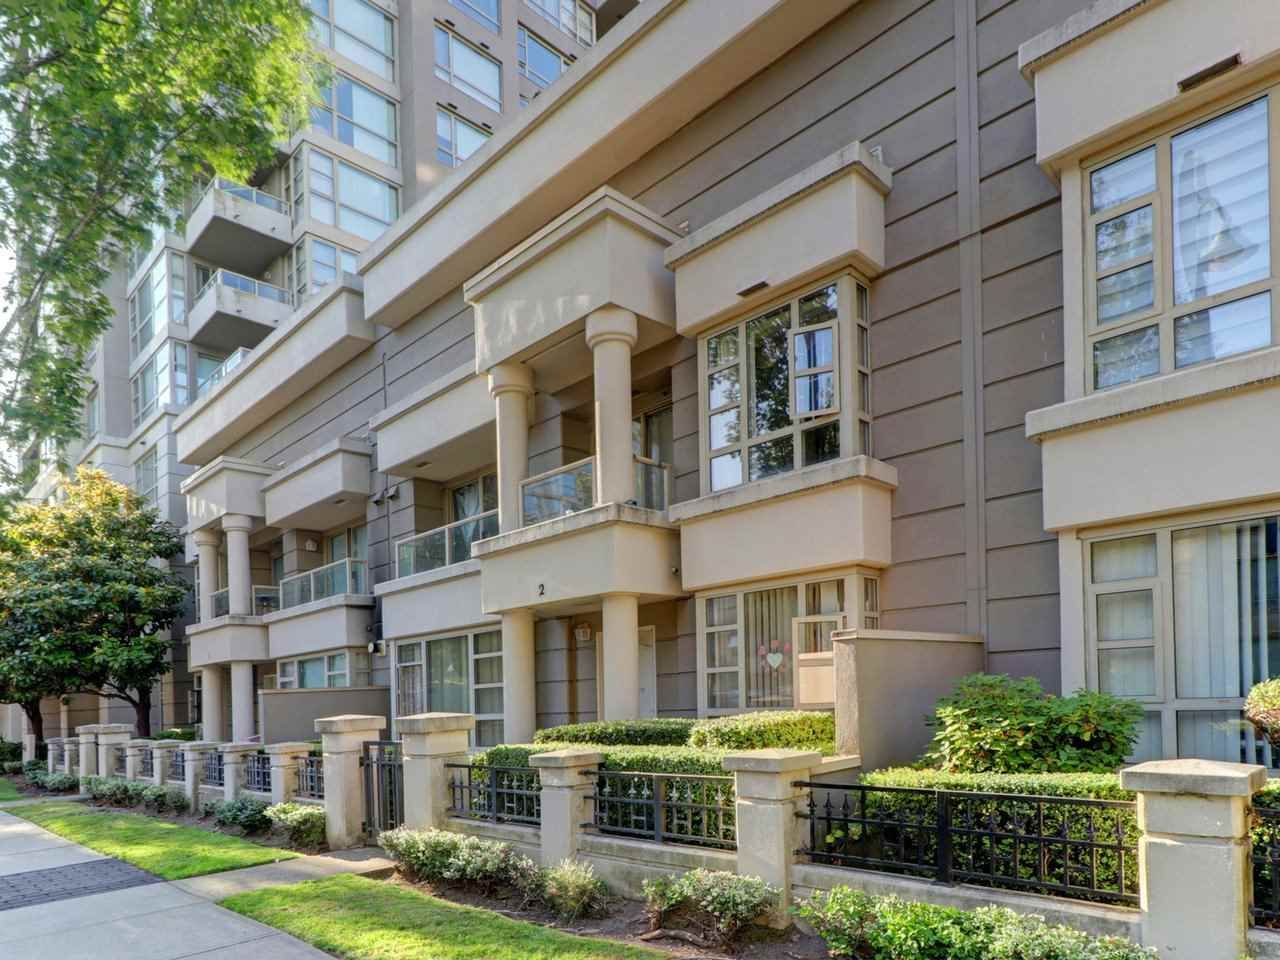 """Main Photo: 2 8297 SABA Road in Richmond: Brighouse Townhouse for sale in """"Rosario Gardens"""" : MLS®# R2486325"""